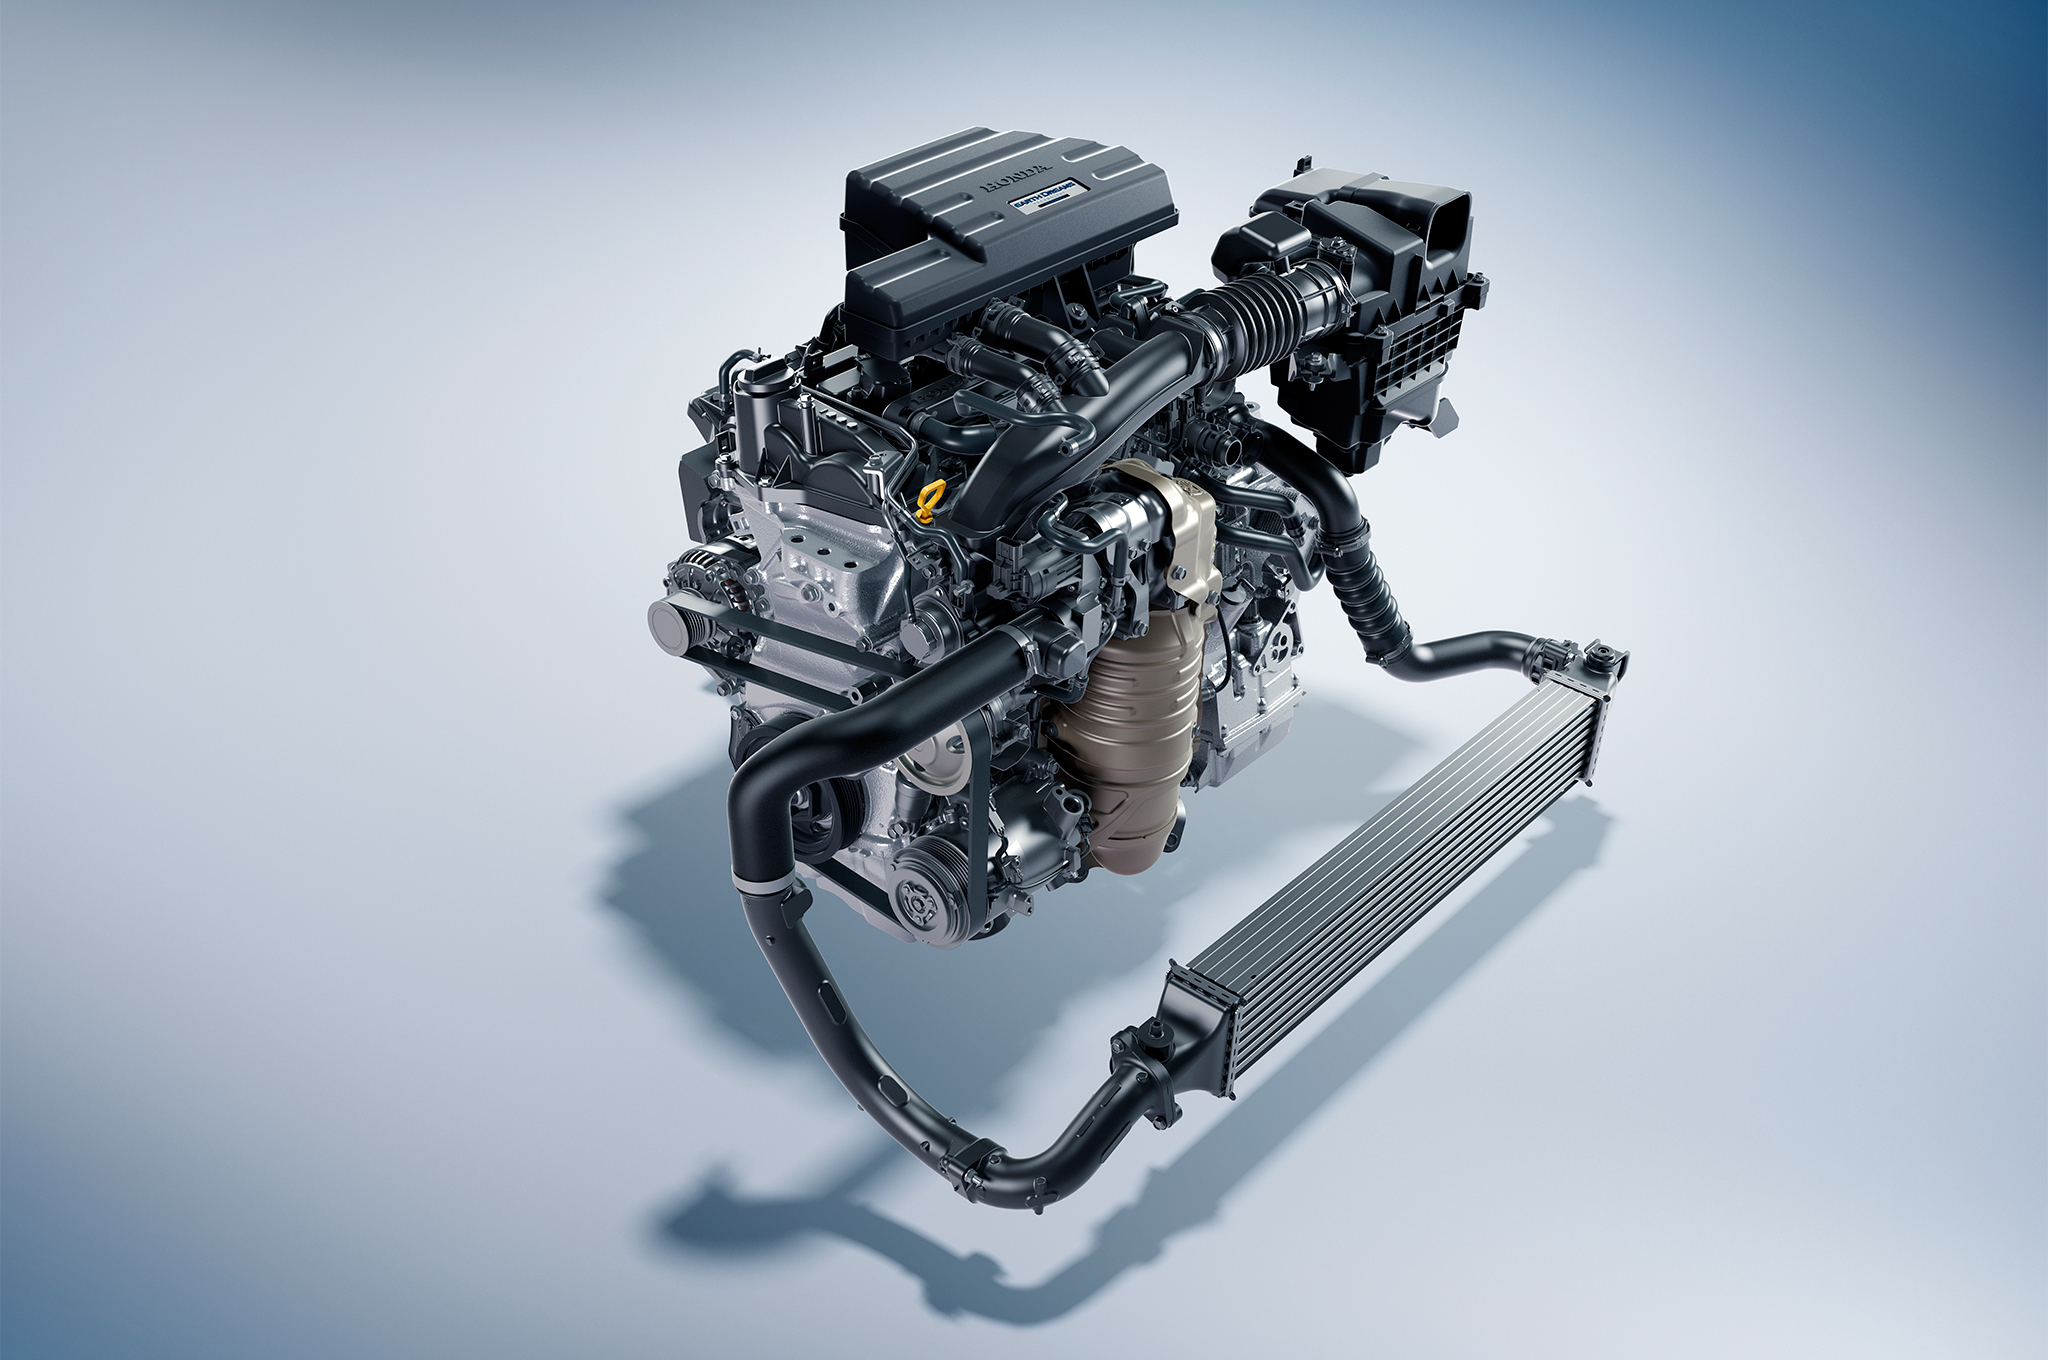 2017-honda-cr-v-engine-1